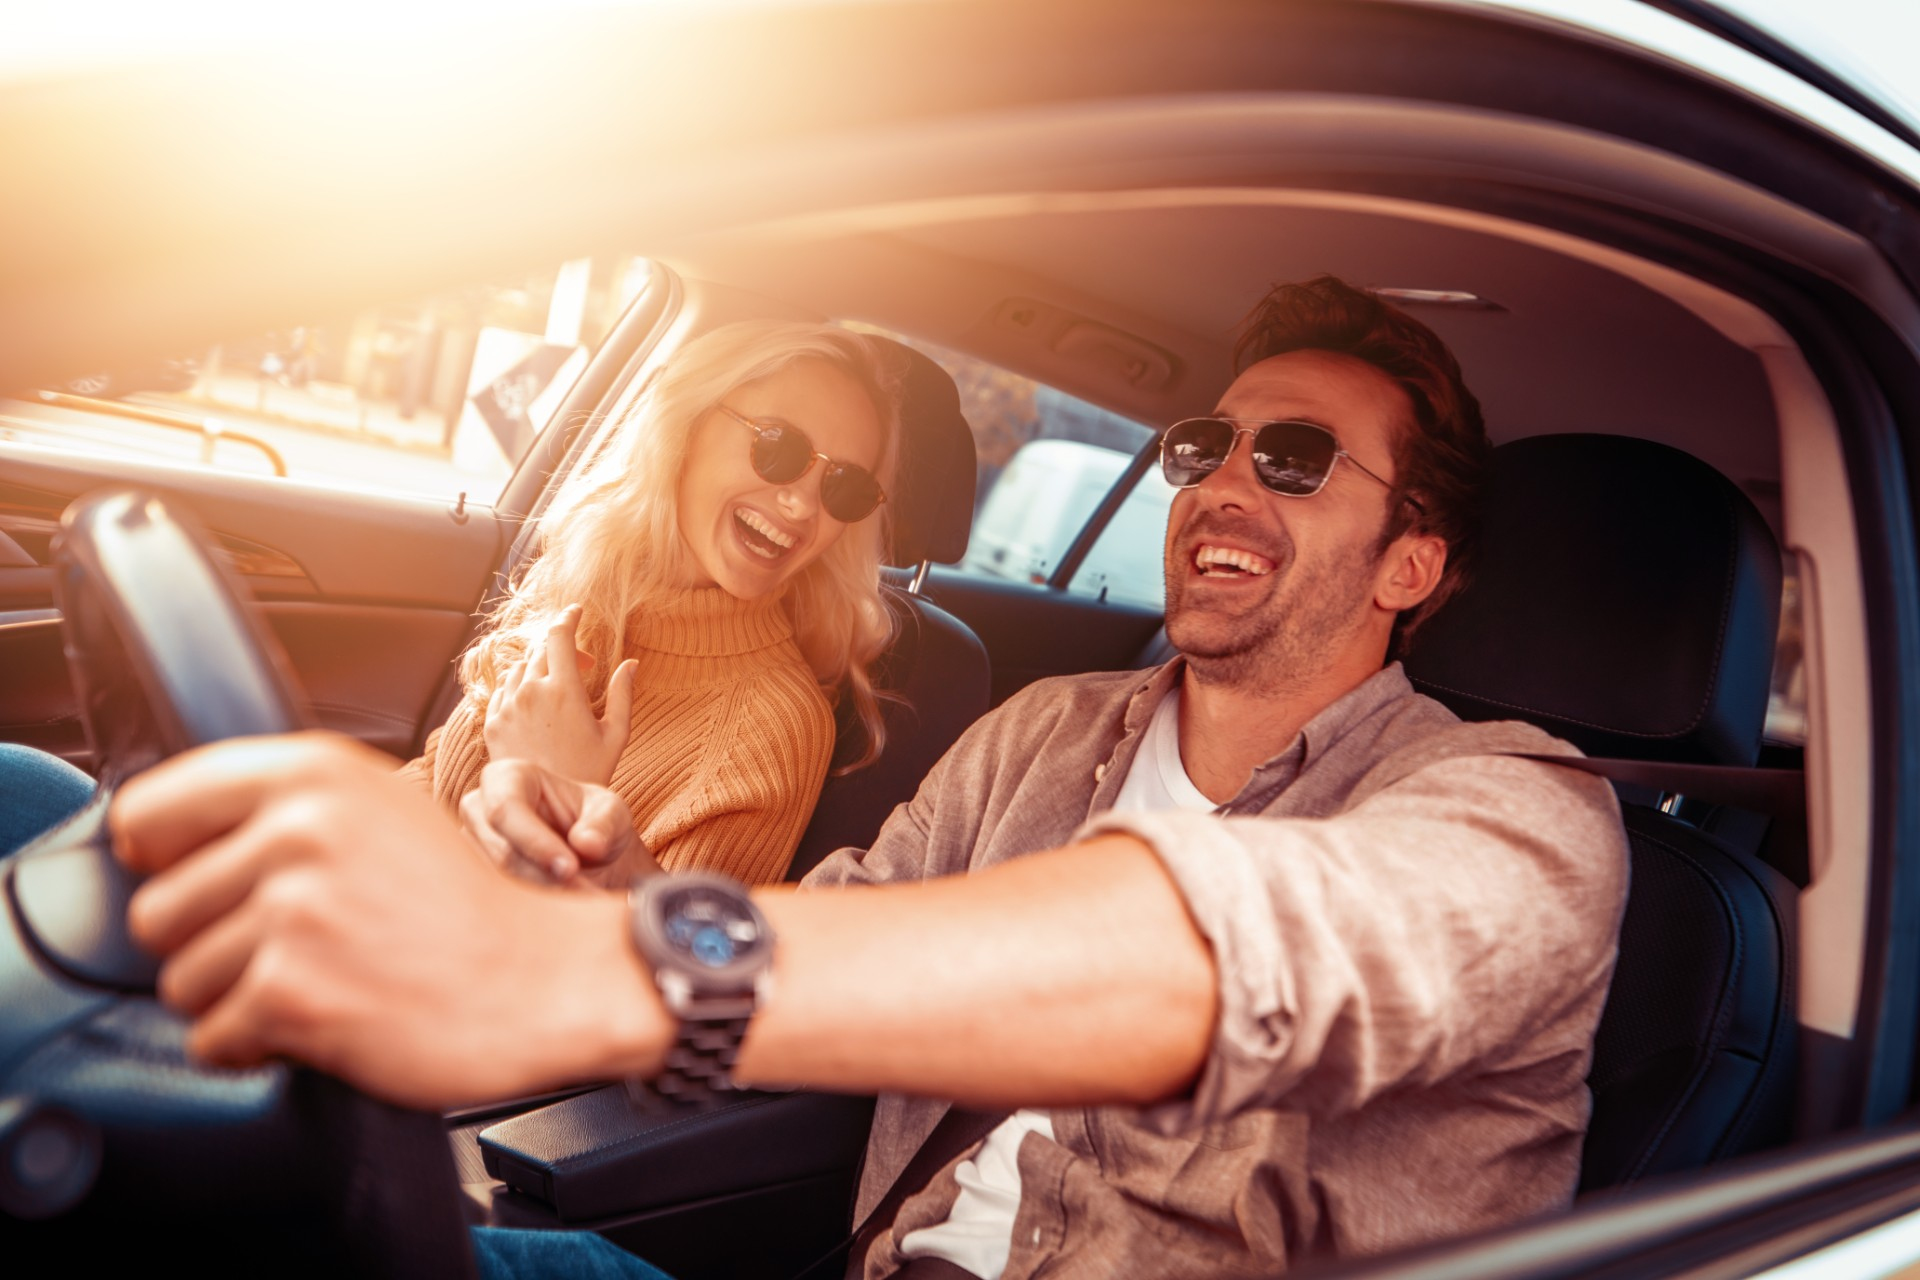 Smiling couple in a rental car